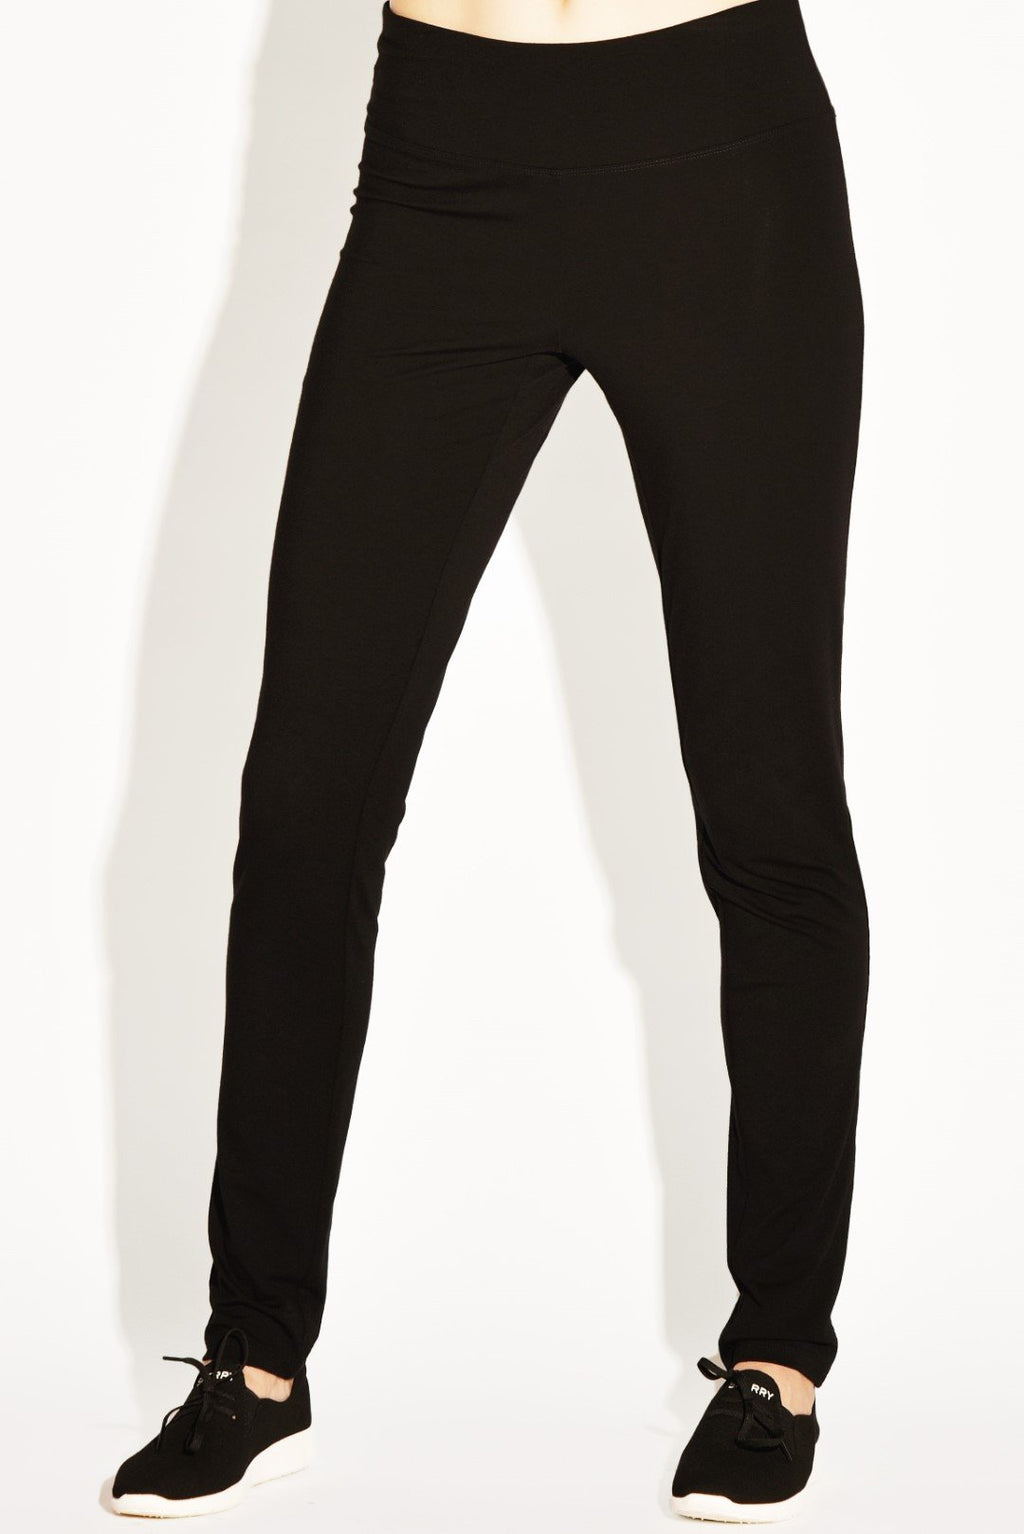 PAULA RYAN RELAXED Slim Leg Long Weekend Pant - Cashmere Modal 6750C-Black-XS Pant